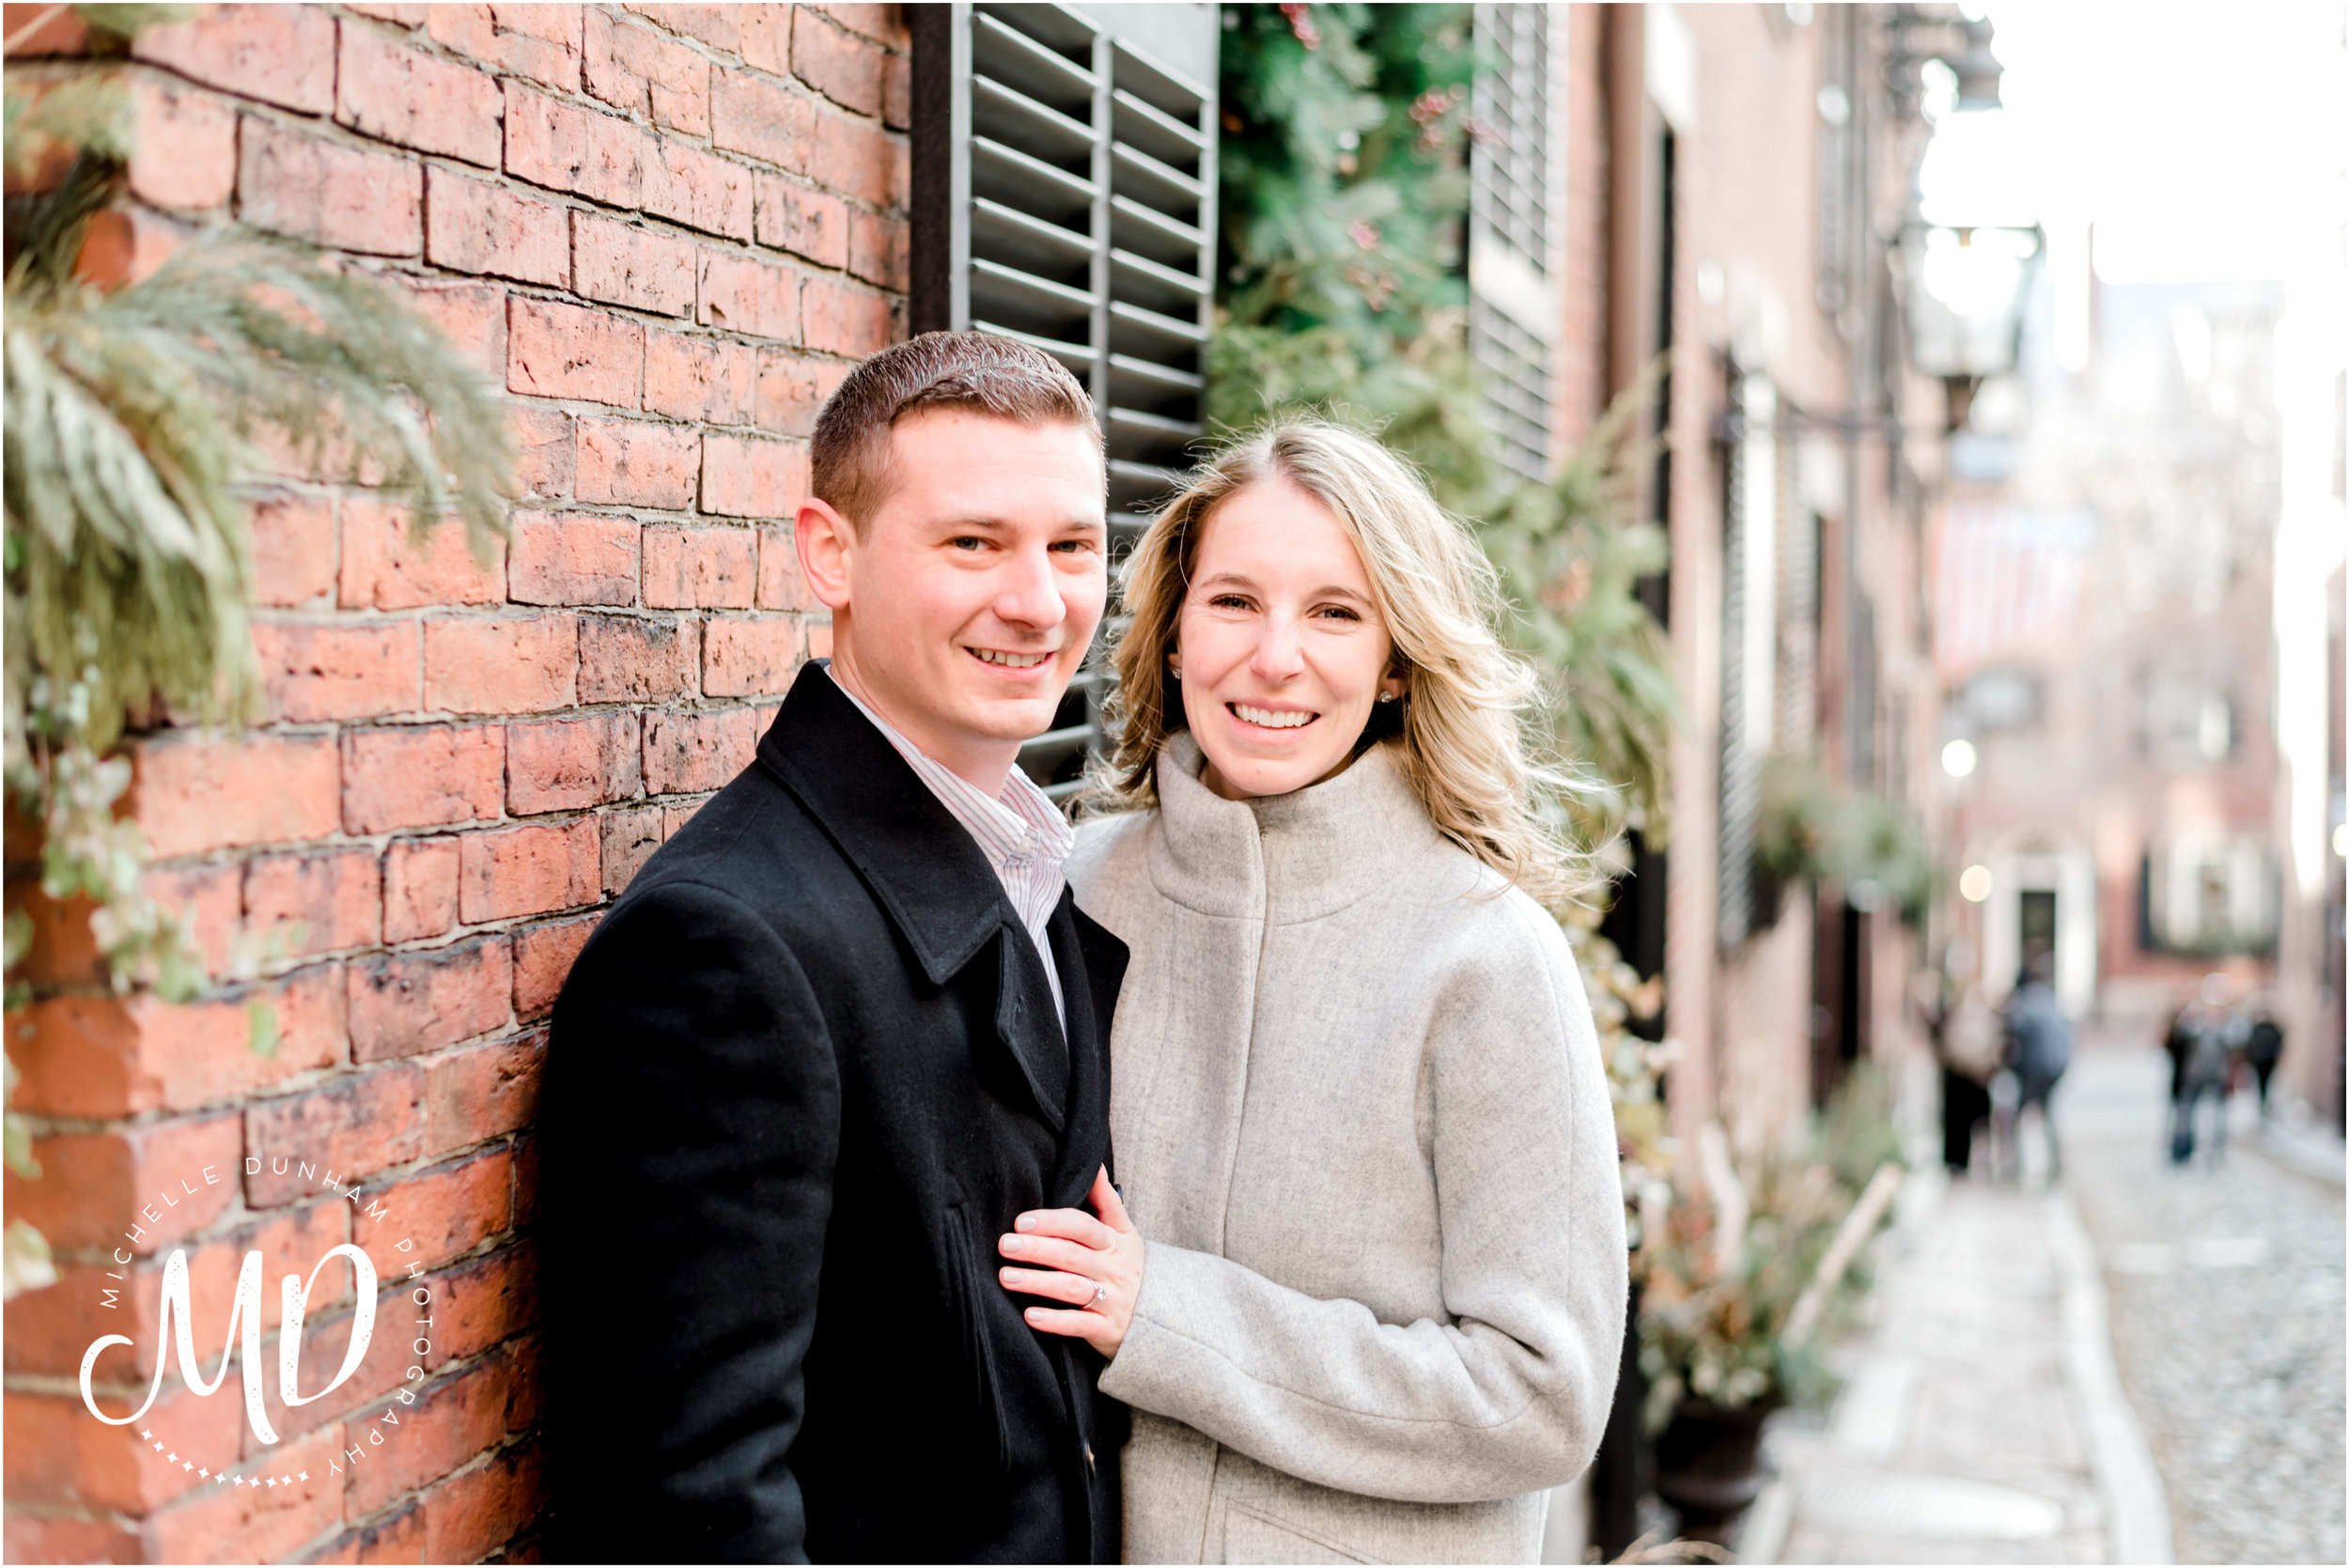 Michelle-Dunham-Photography-Beacon-Hill-Engagement-5.jpg